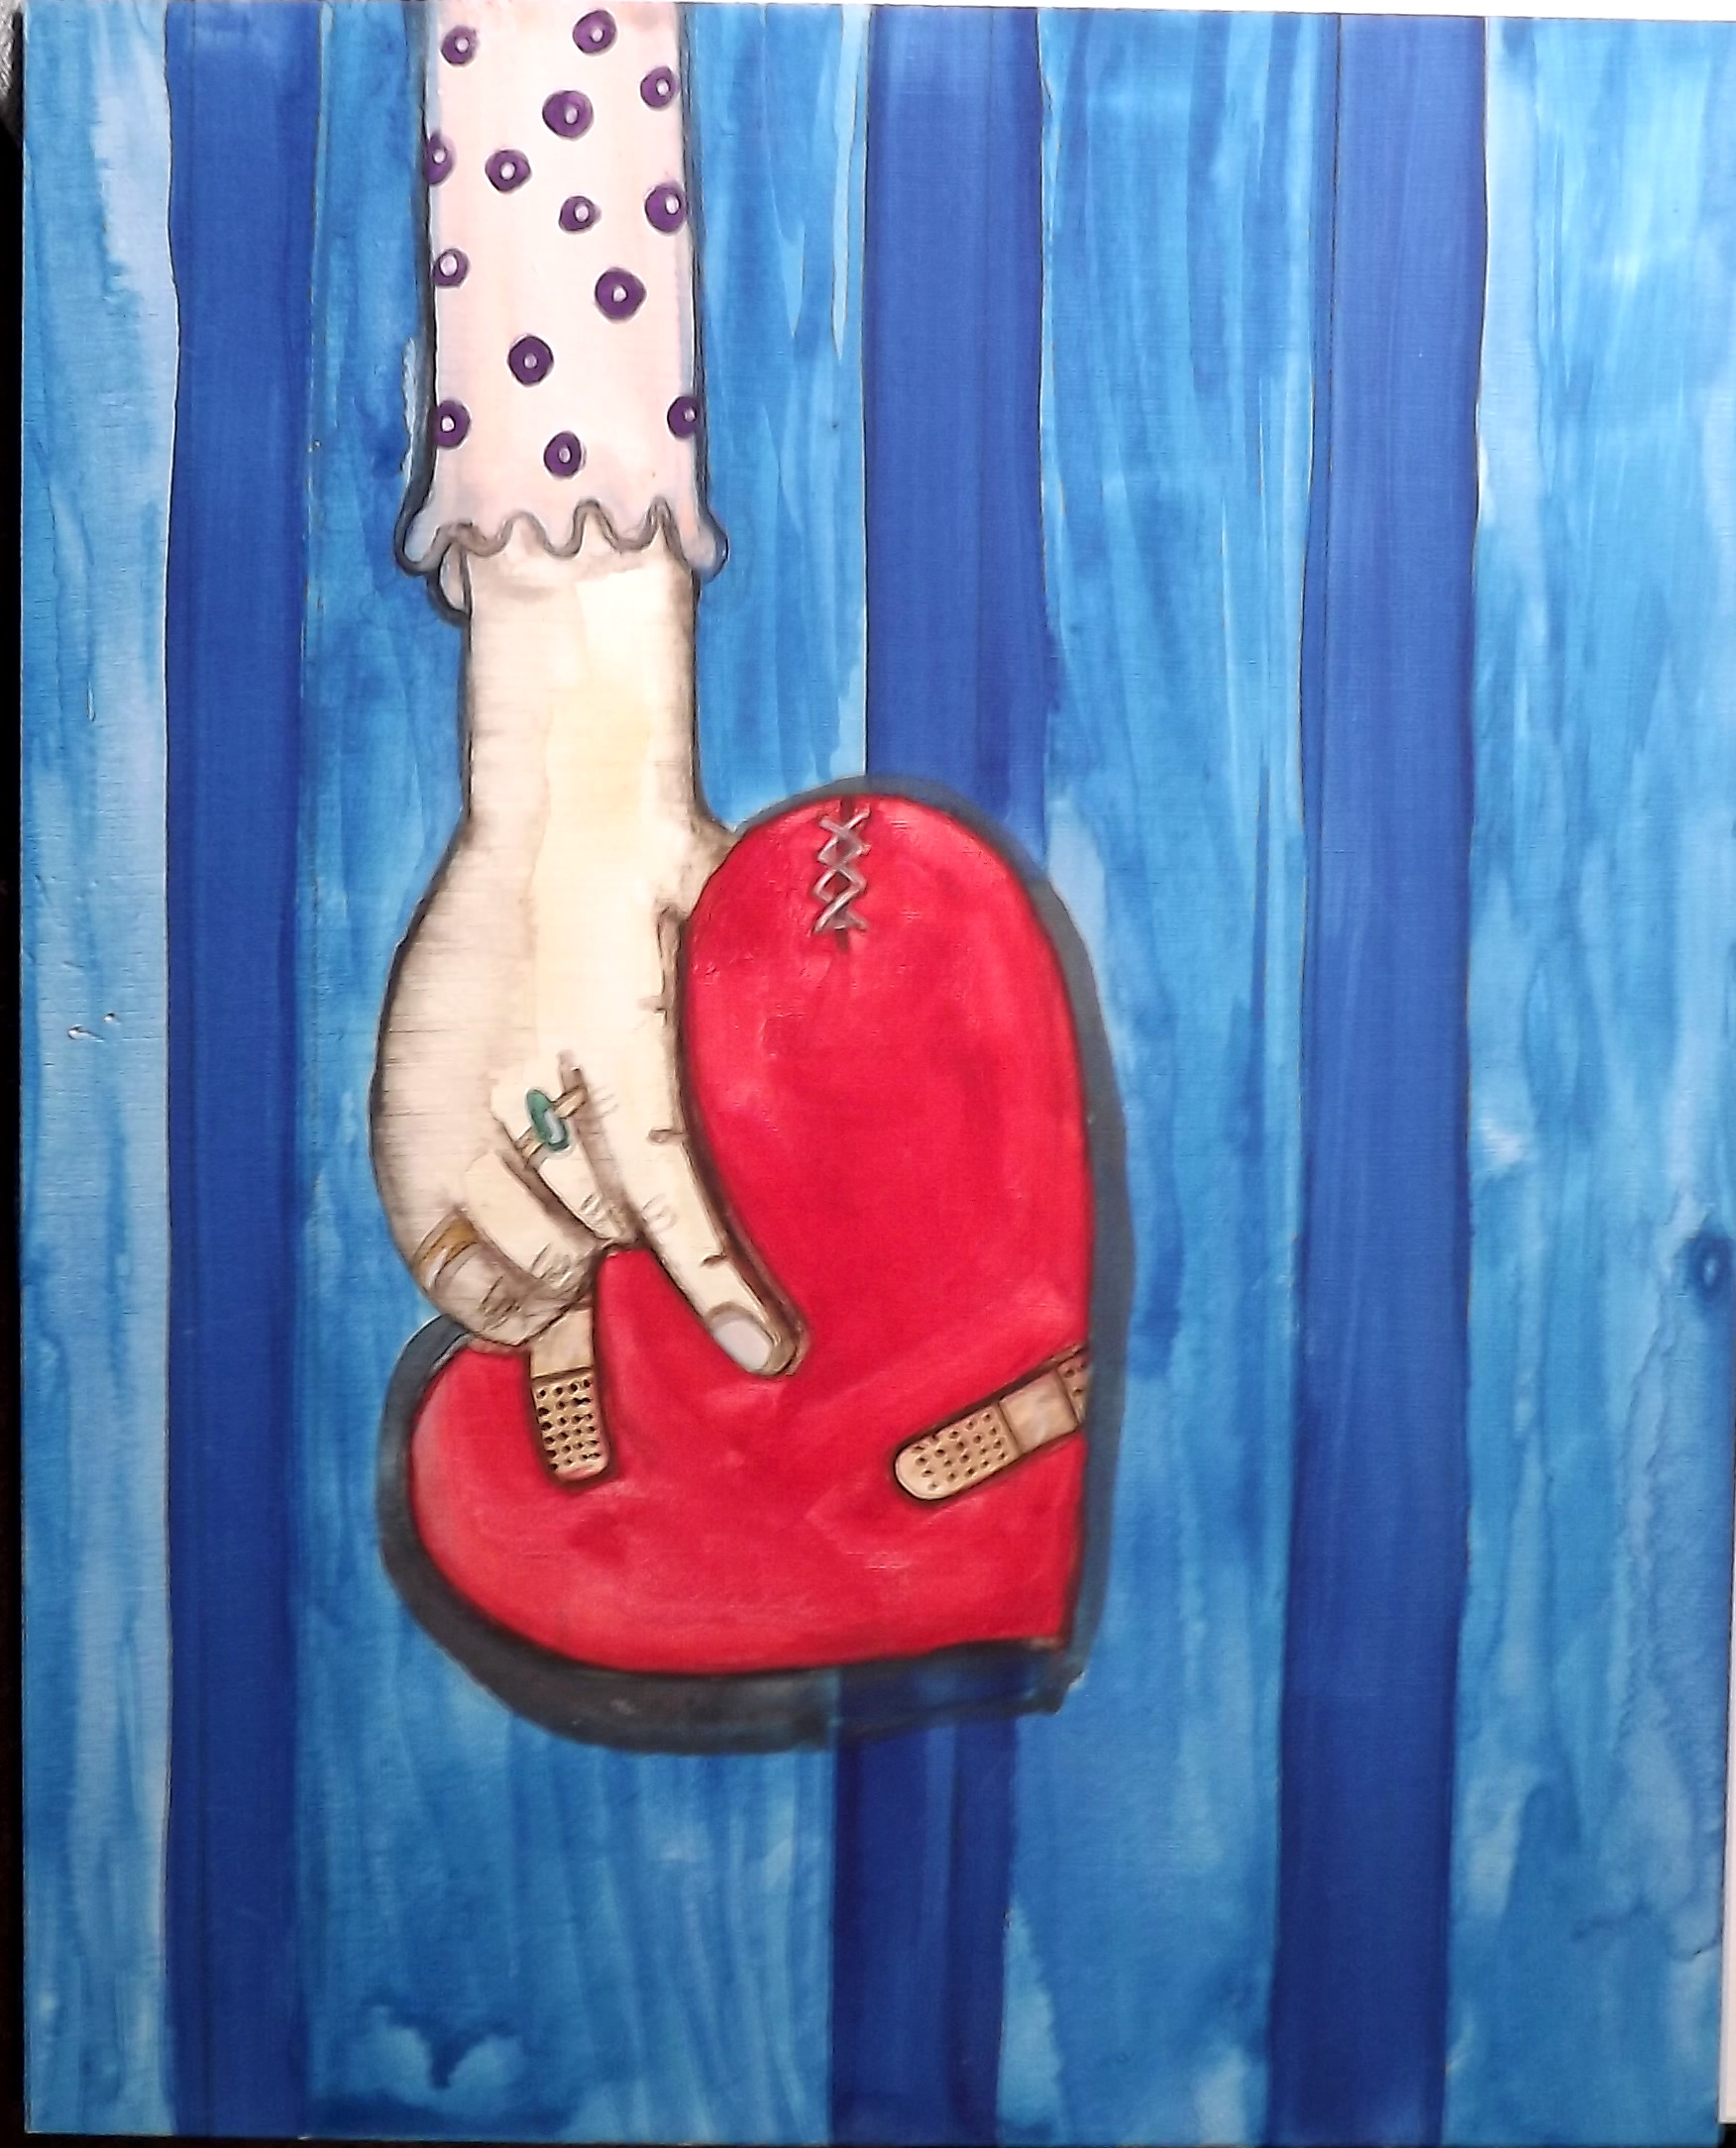 Still a Good Heart 8x10 watercolor painting